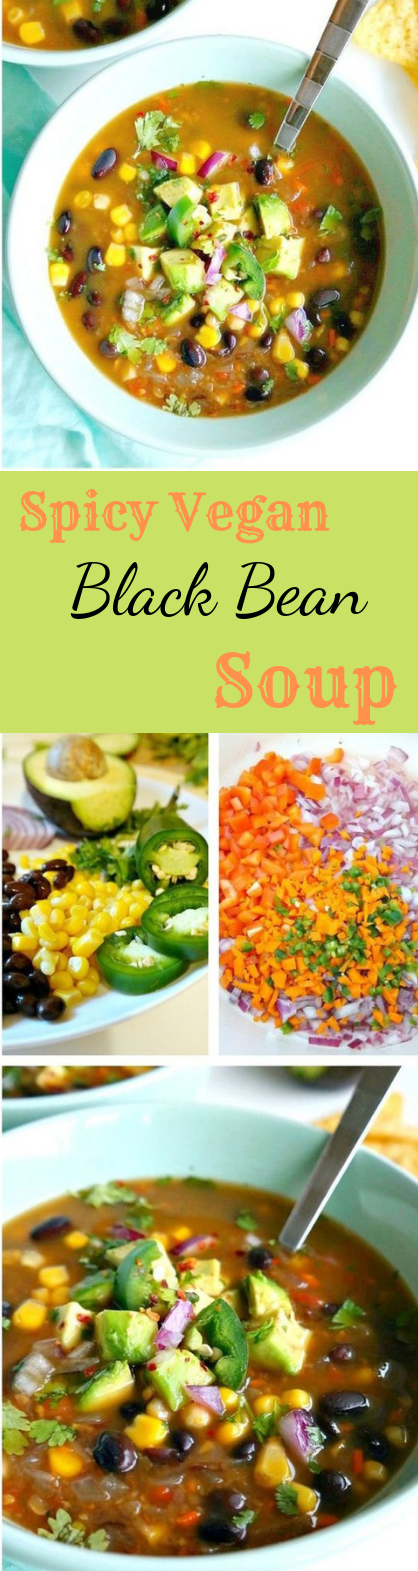 spicy vegan black bean soup #vegan #soup